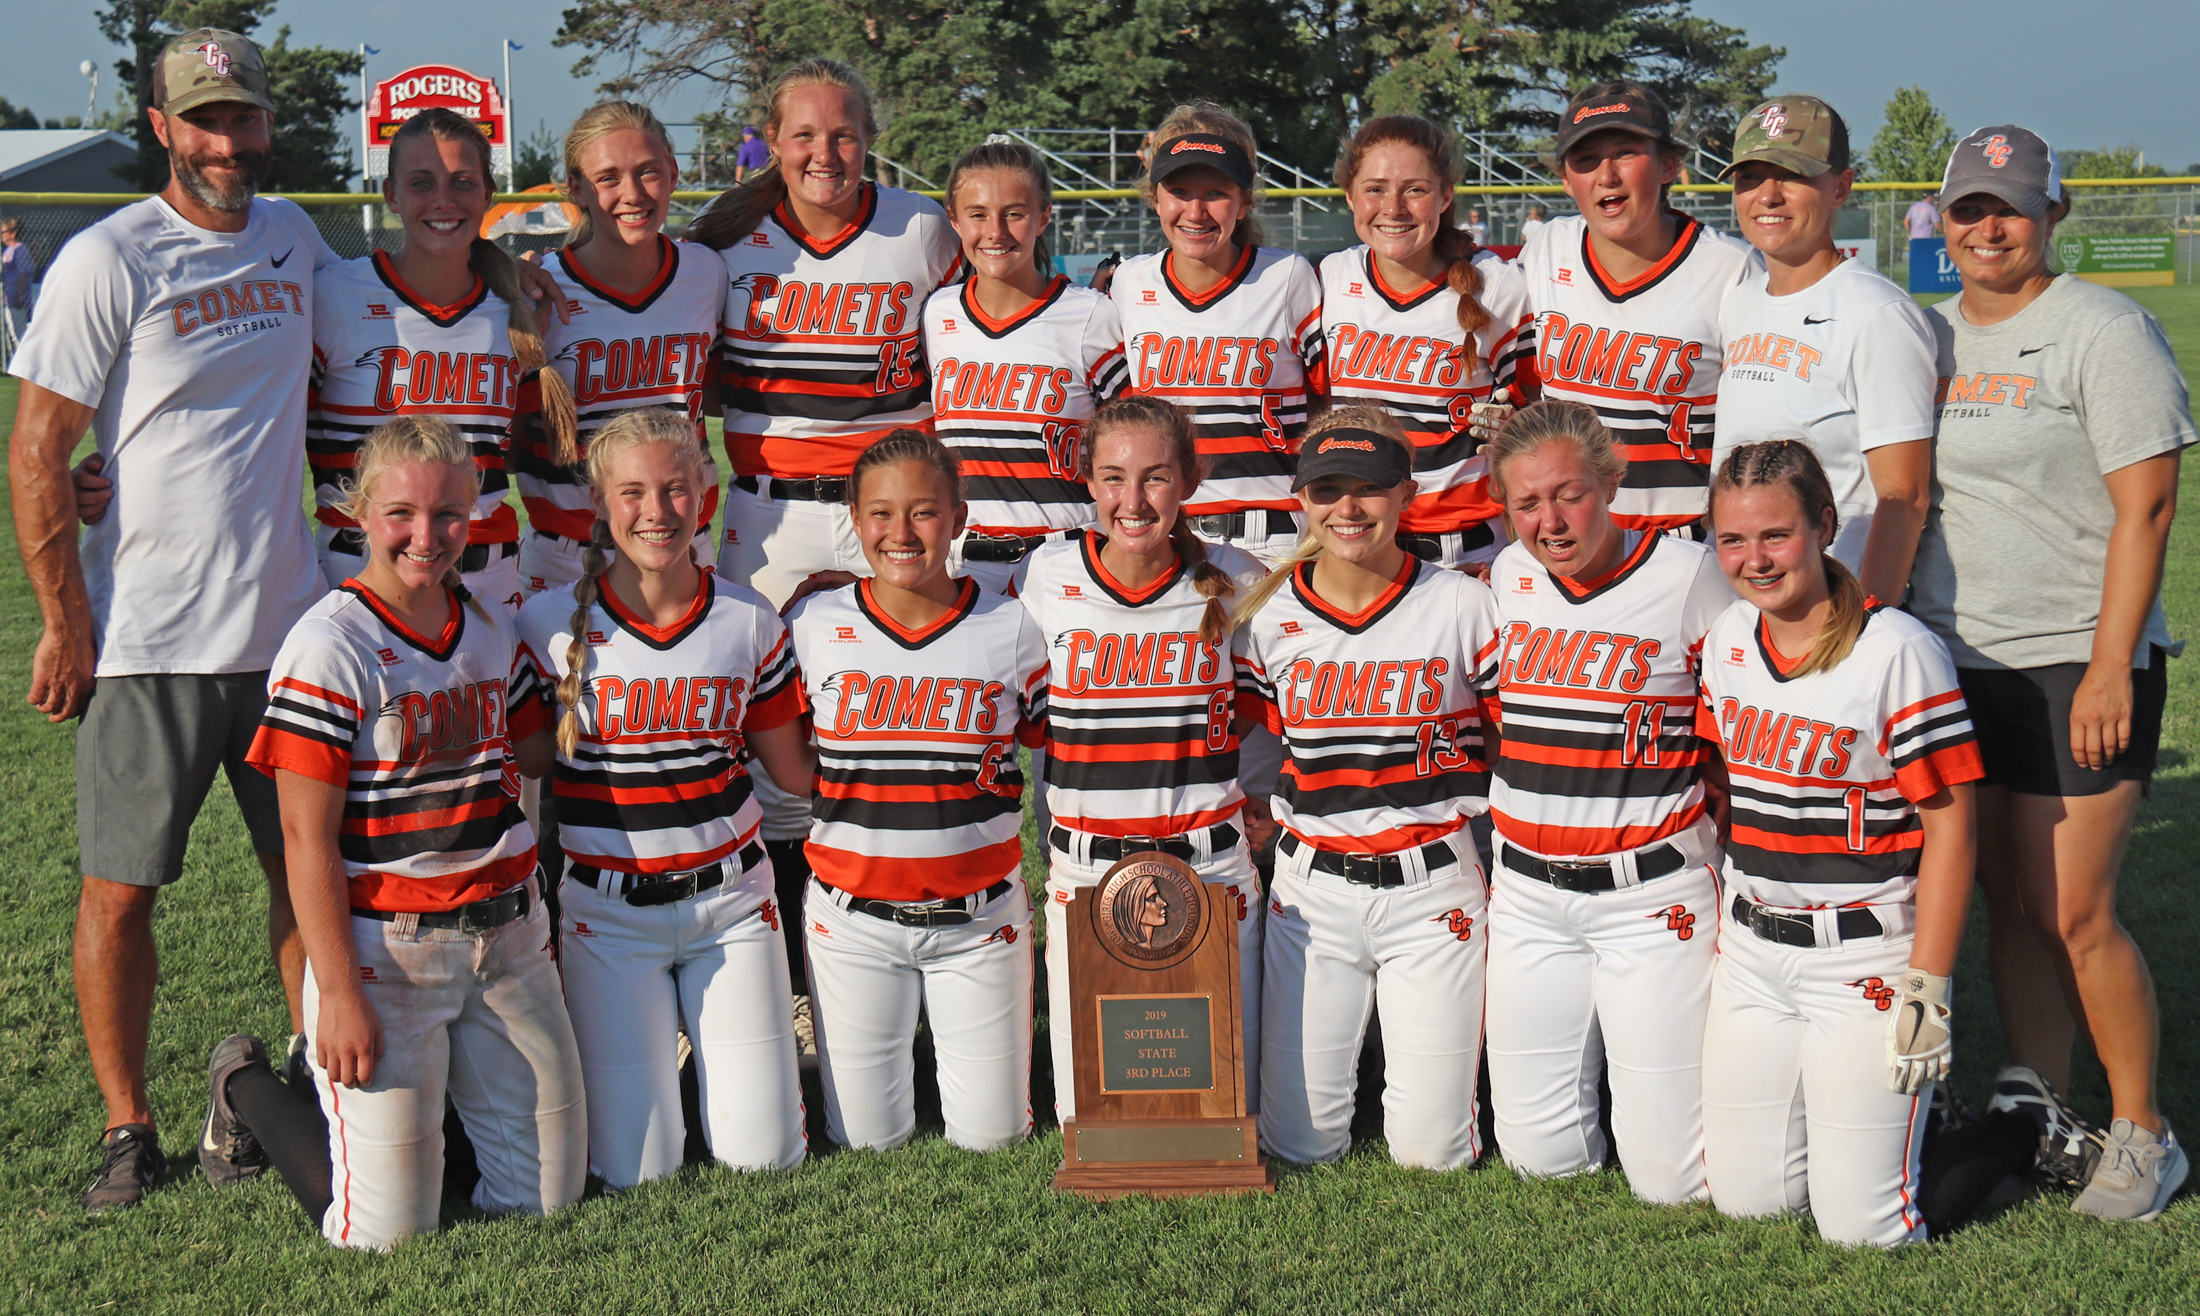 Comets rally back to take 3rd at State